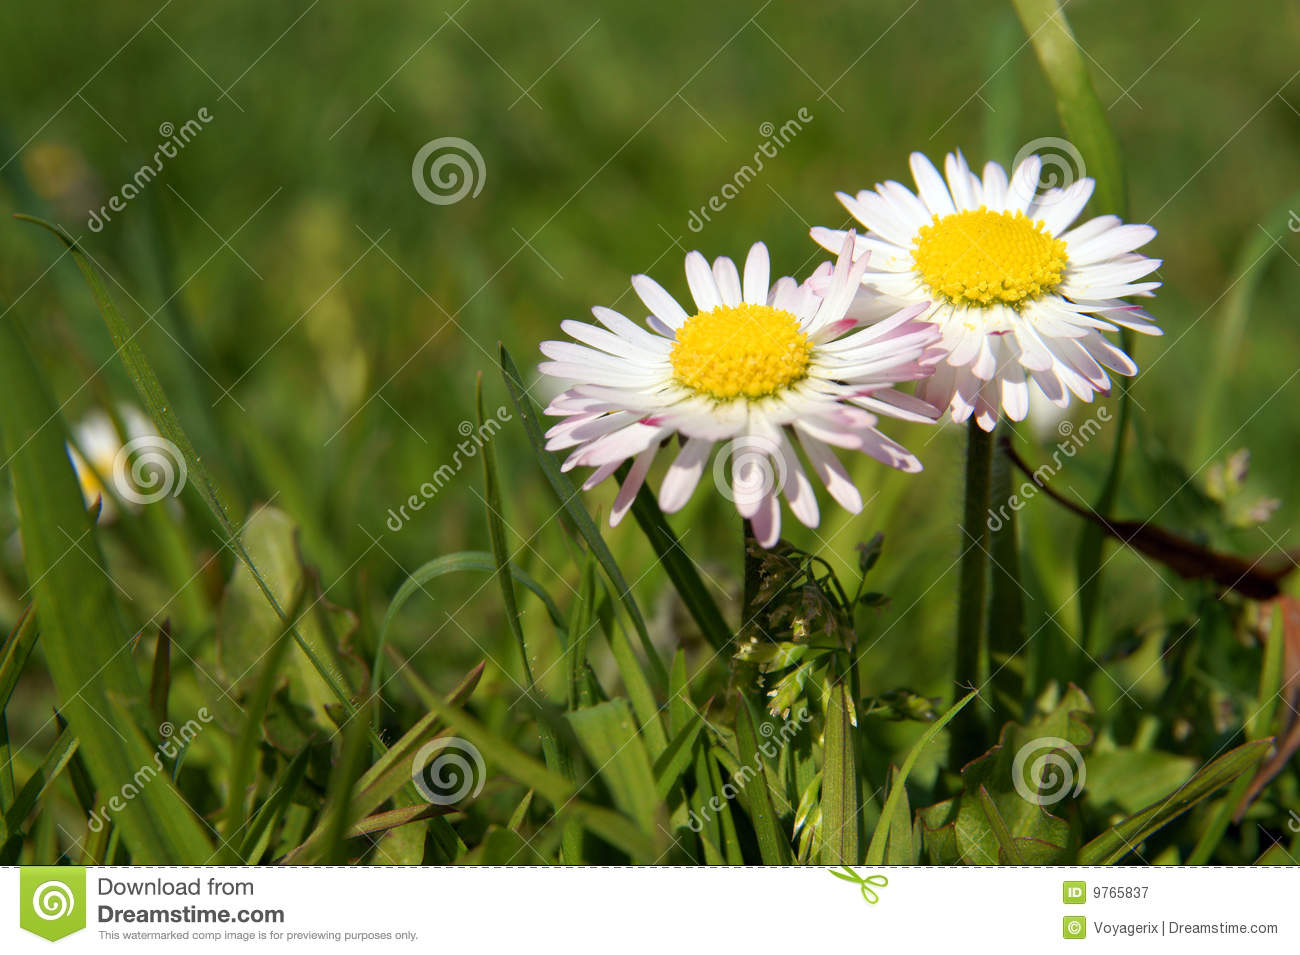 Close up of daisy flower growing in grass stock image image of royalty free stock photo izmirmasajfo Choice Image